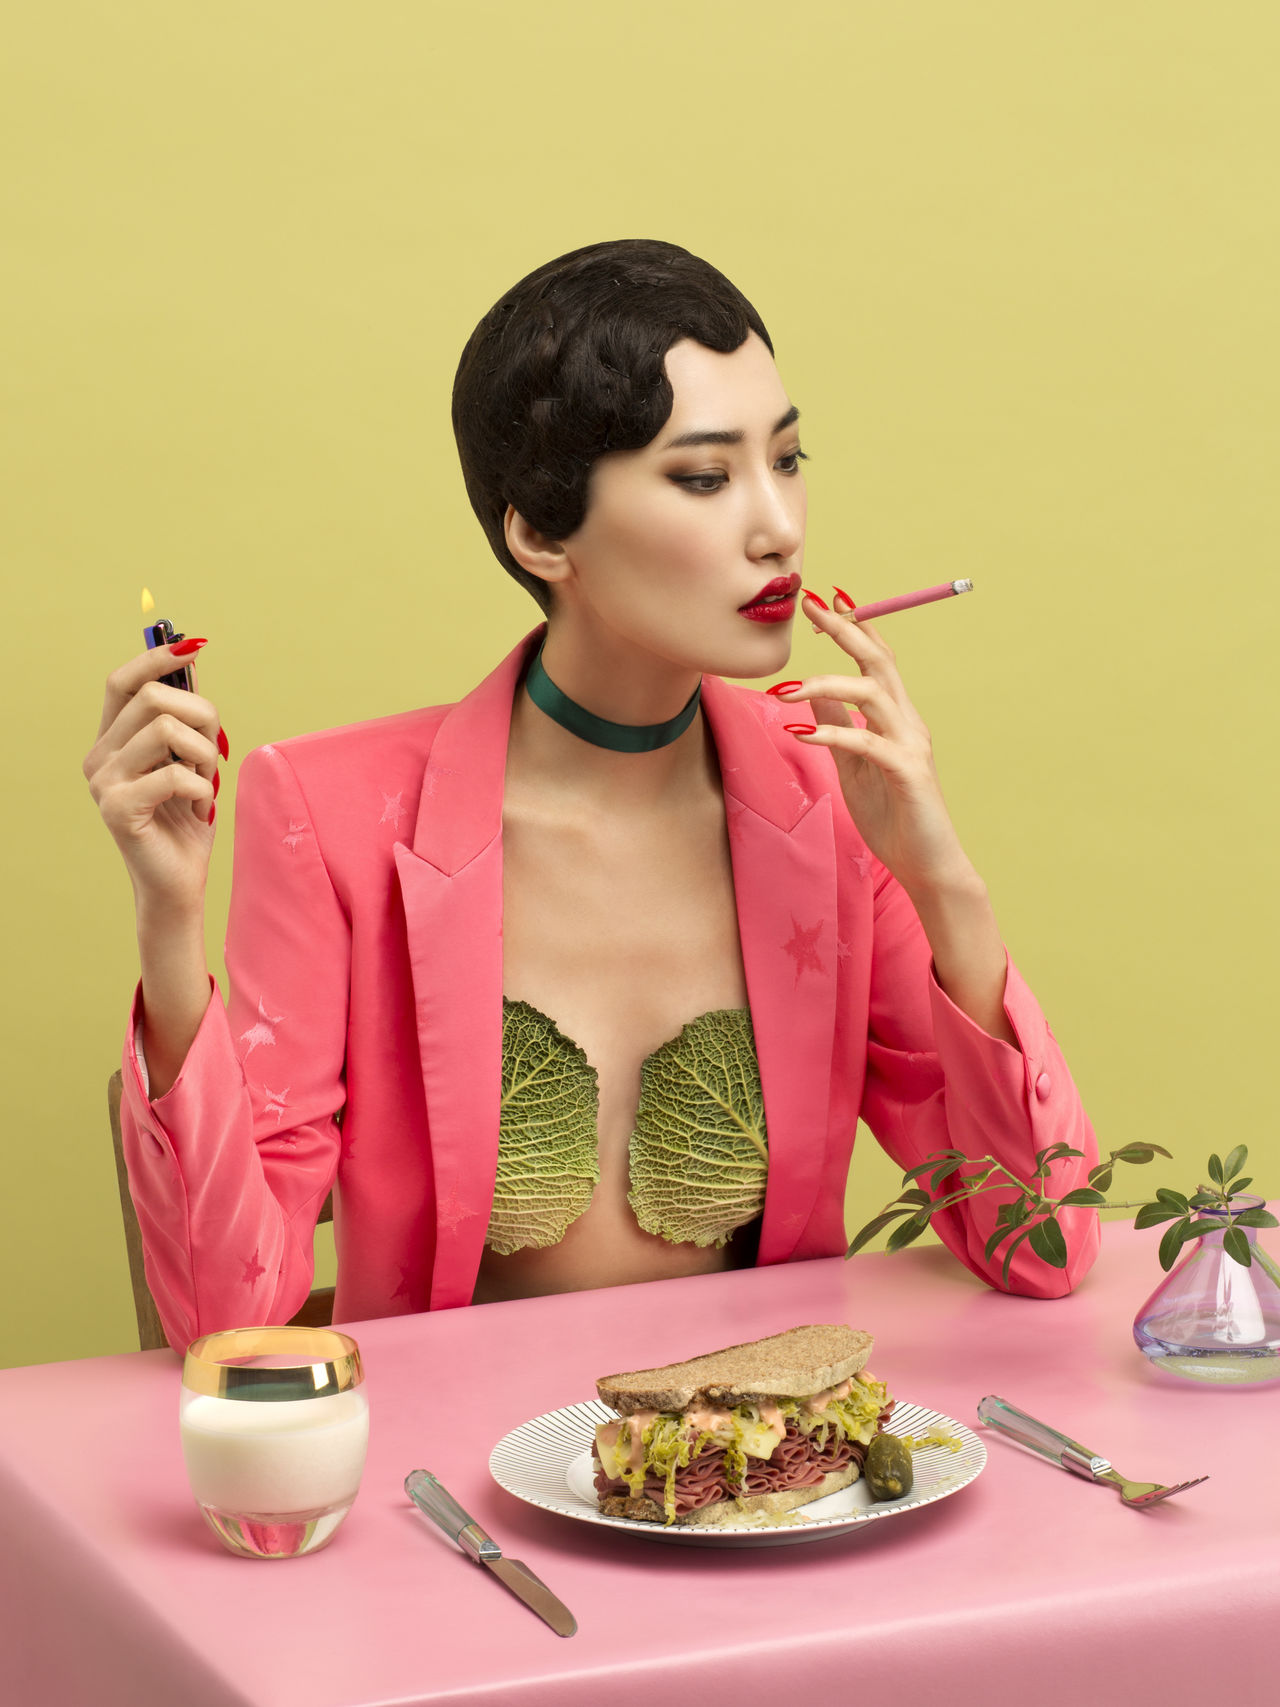 Photography: ALEKSANDRA KINGO, Styling: LUCY-RUTH HATHAWAY, Art Direction: GEM FLETCHER